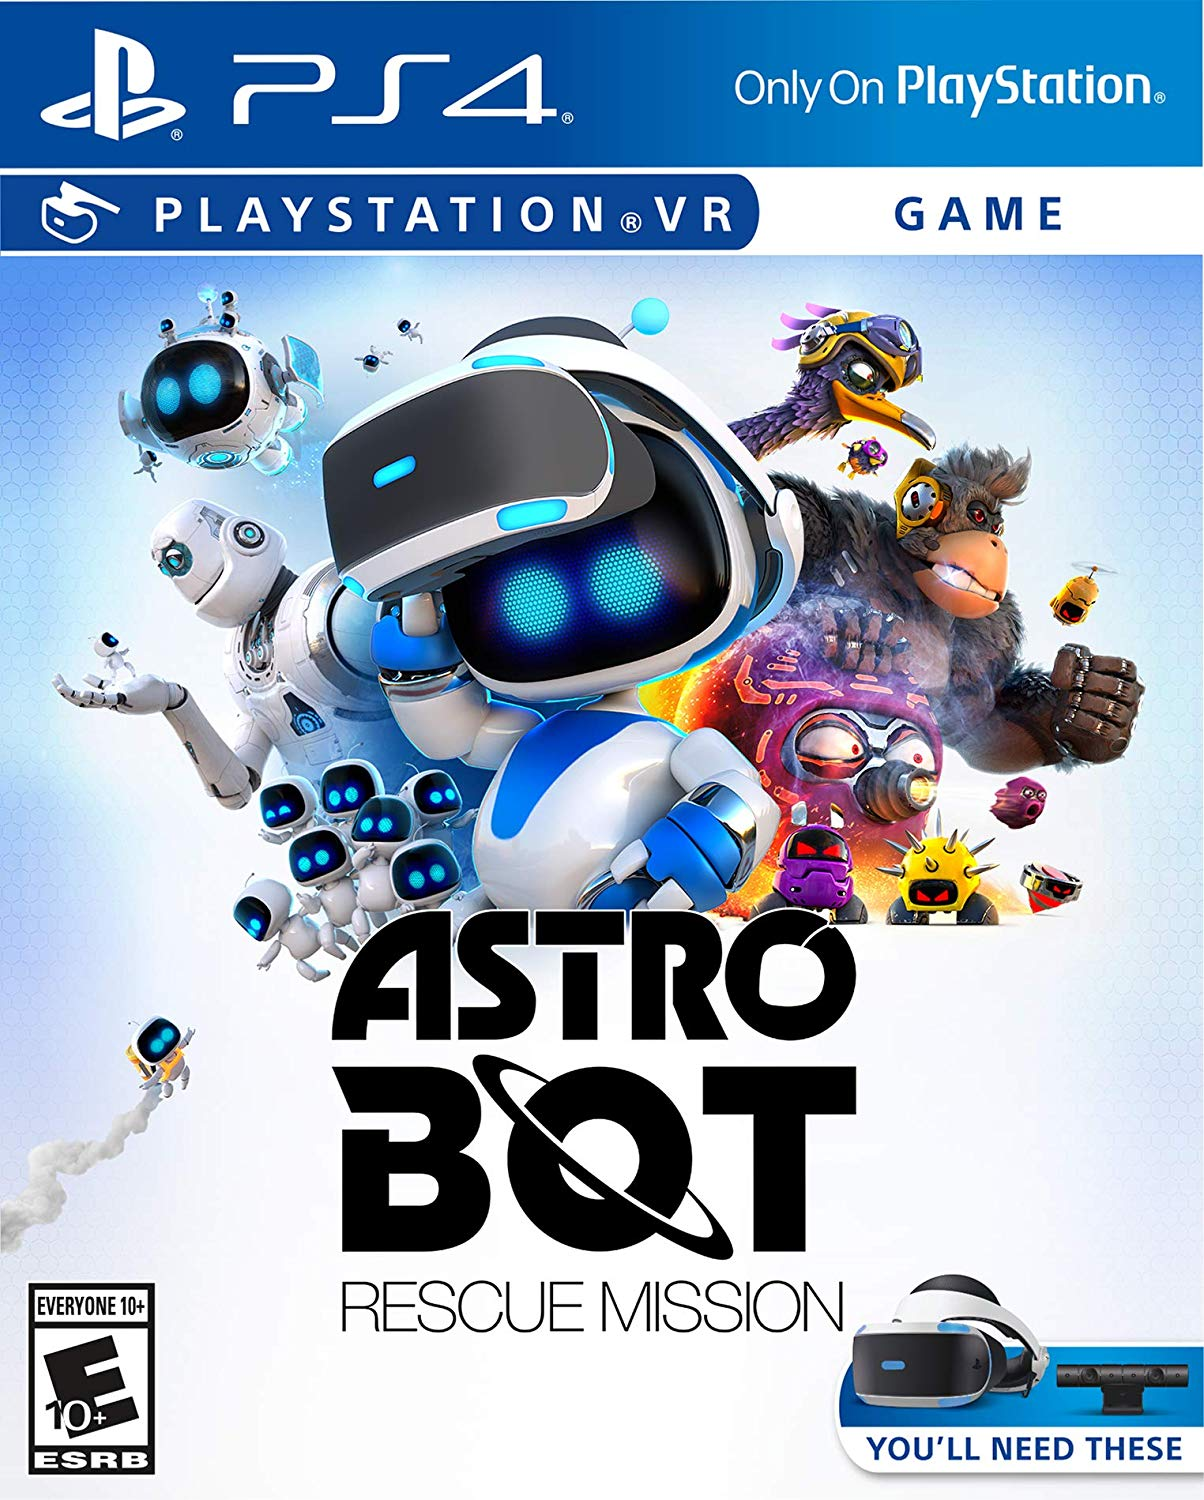 80a6b3e051e ASTRO Bot Rescue Mission – PlayStation VR by Sony – world of toys ...